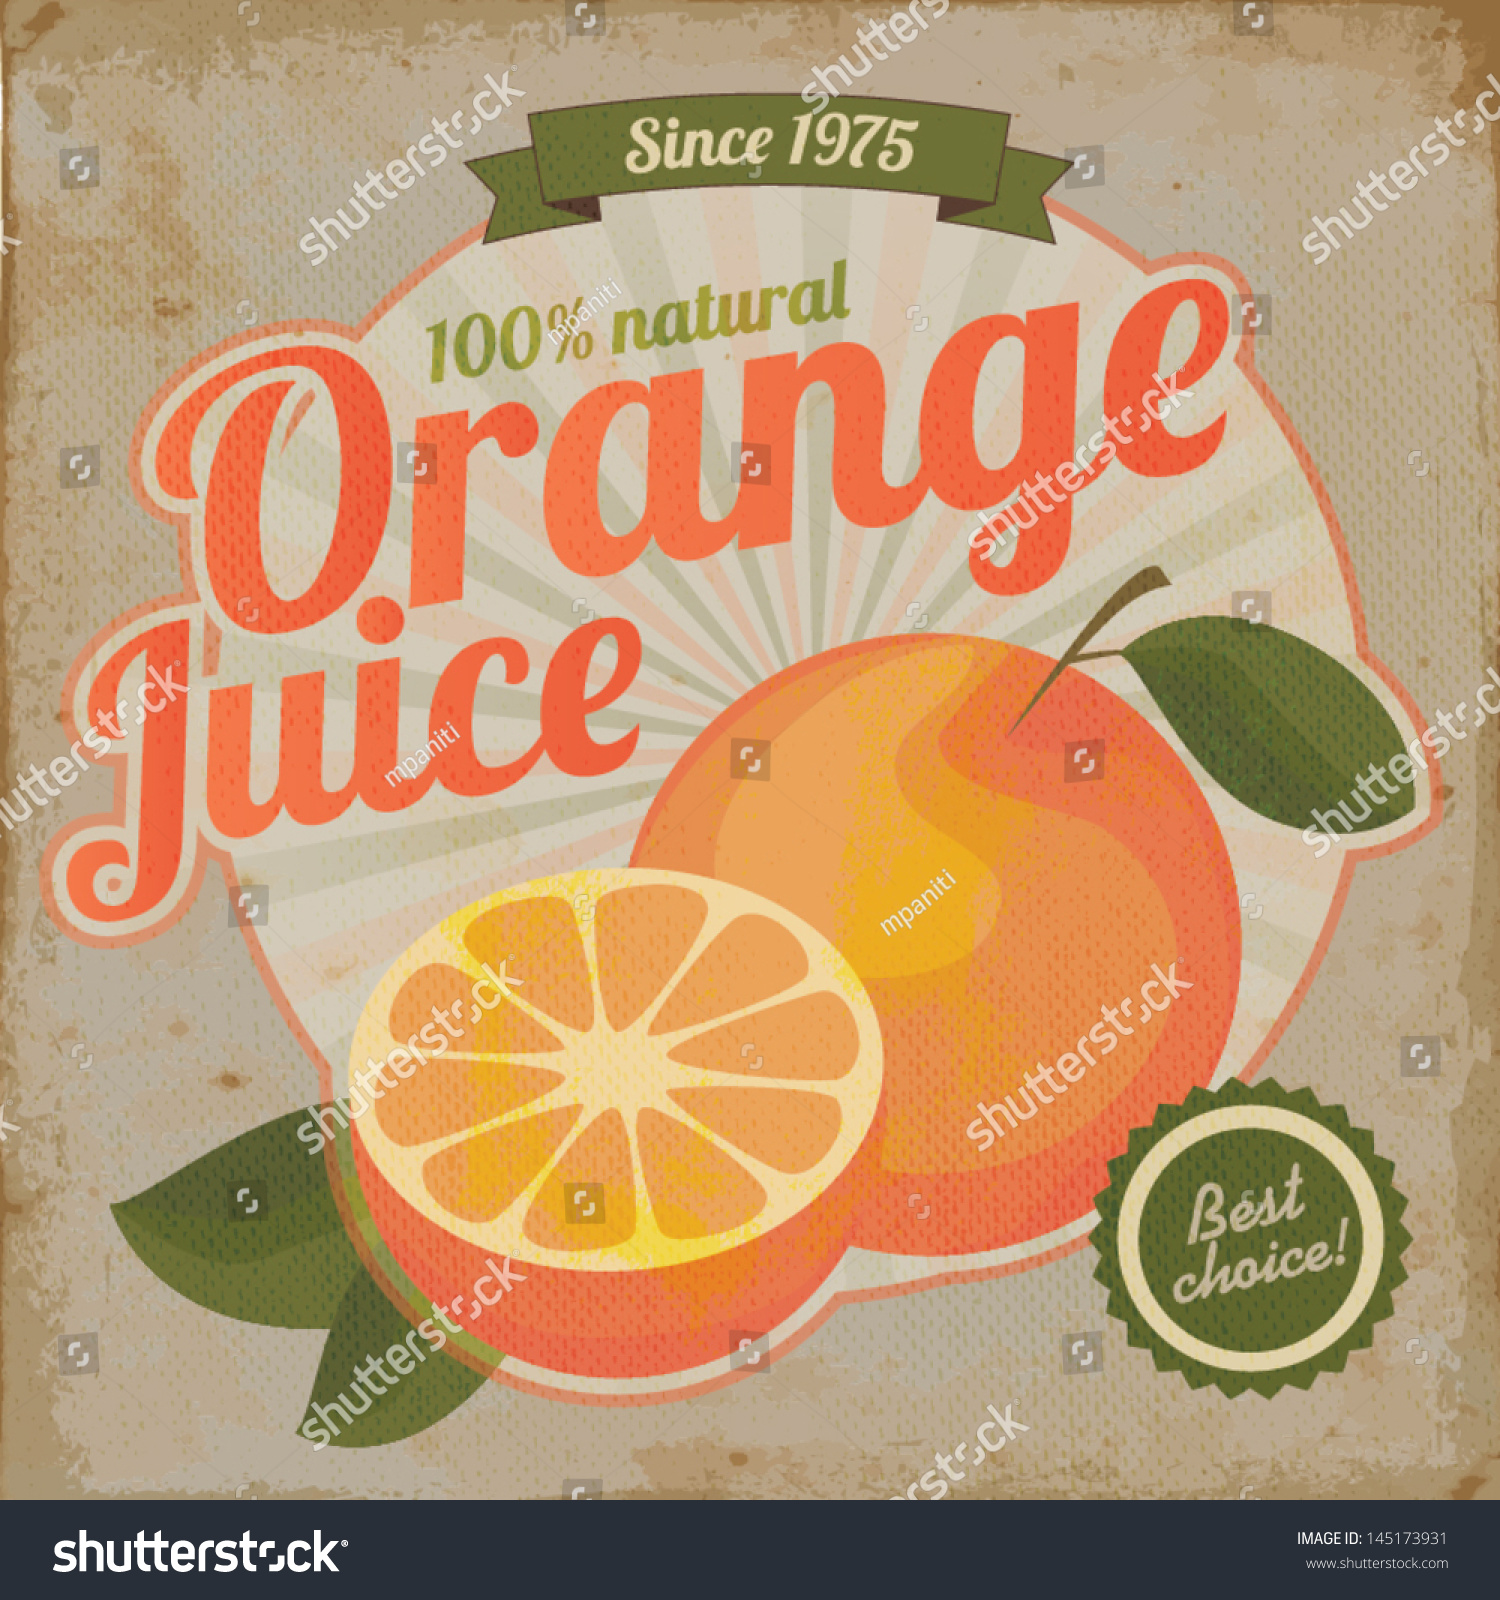 process essay orange juice Heating foods and its effect on amoutn of vitamin c aim the aim of the experiment is to investigate how much vitamin c / ascorbic acid is destroyed when orange juice.